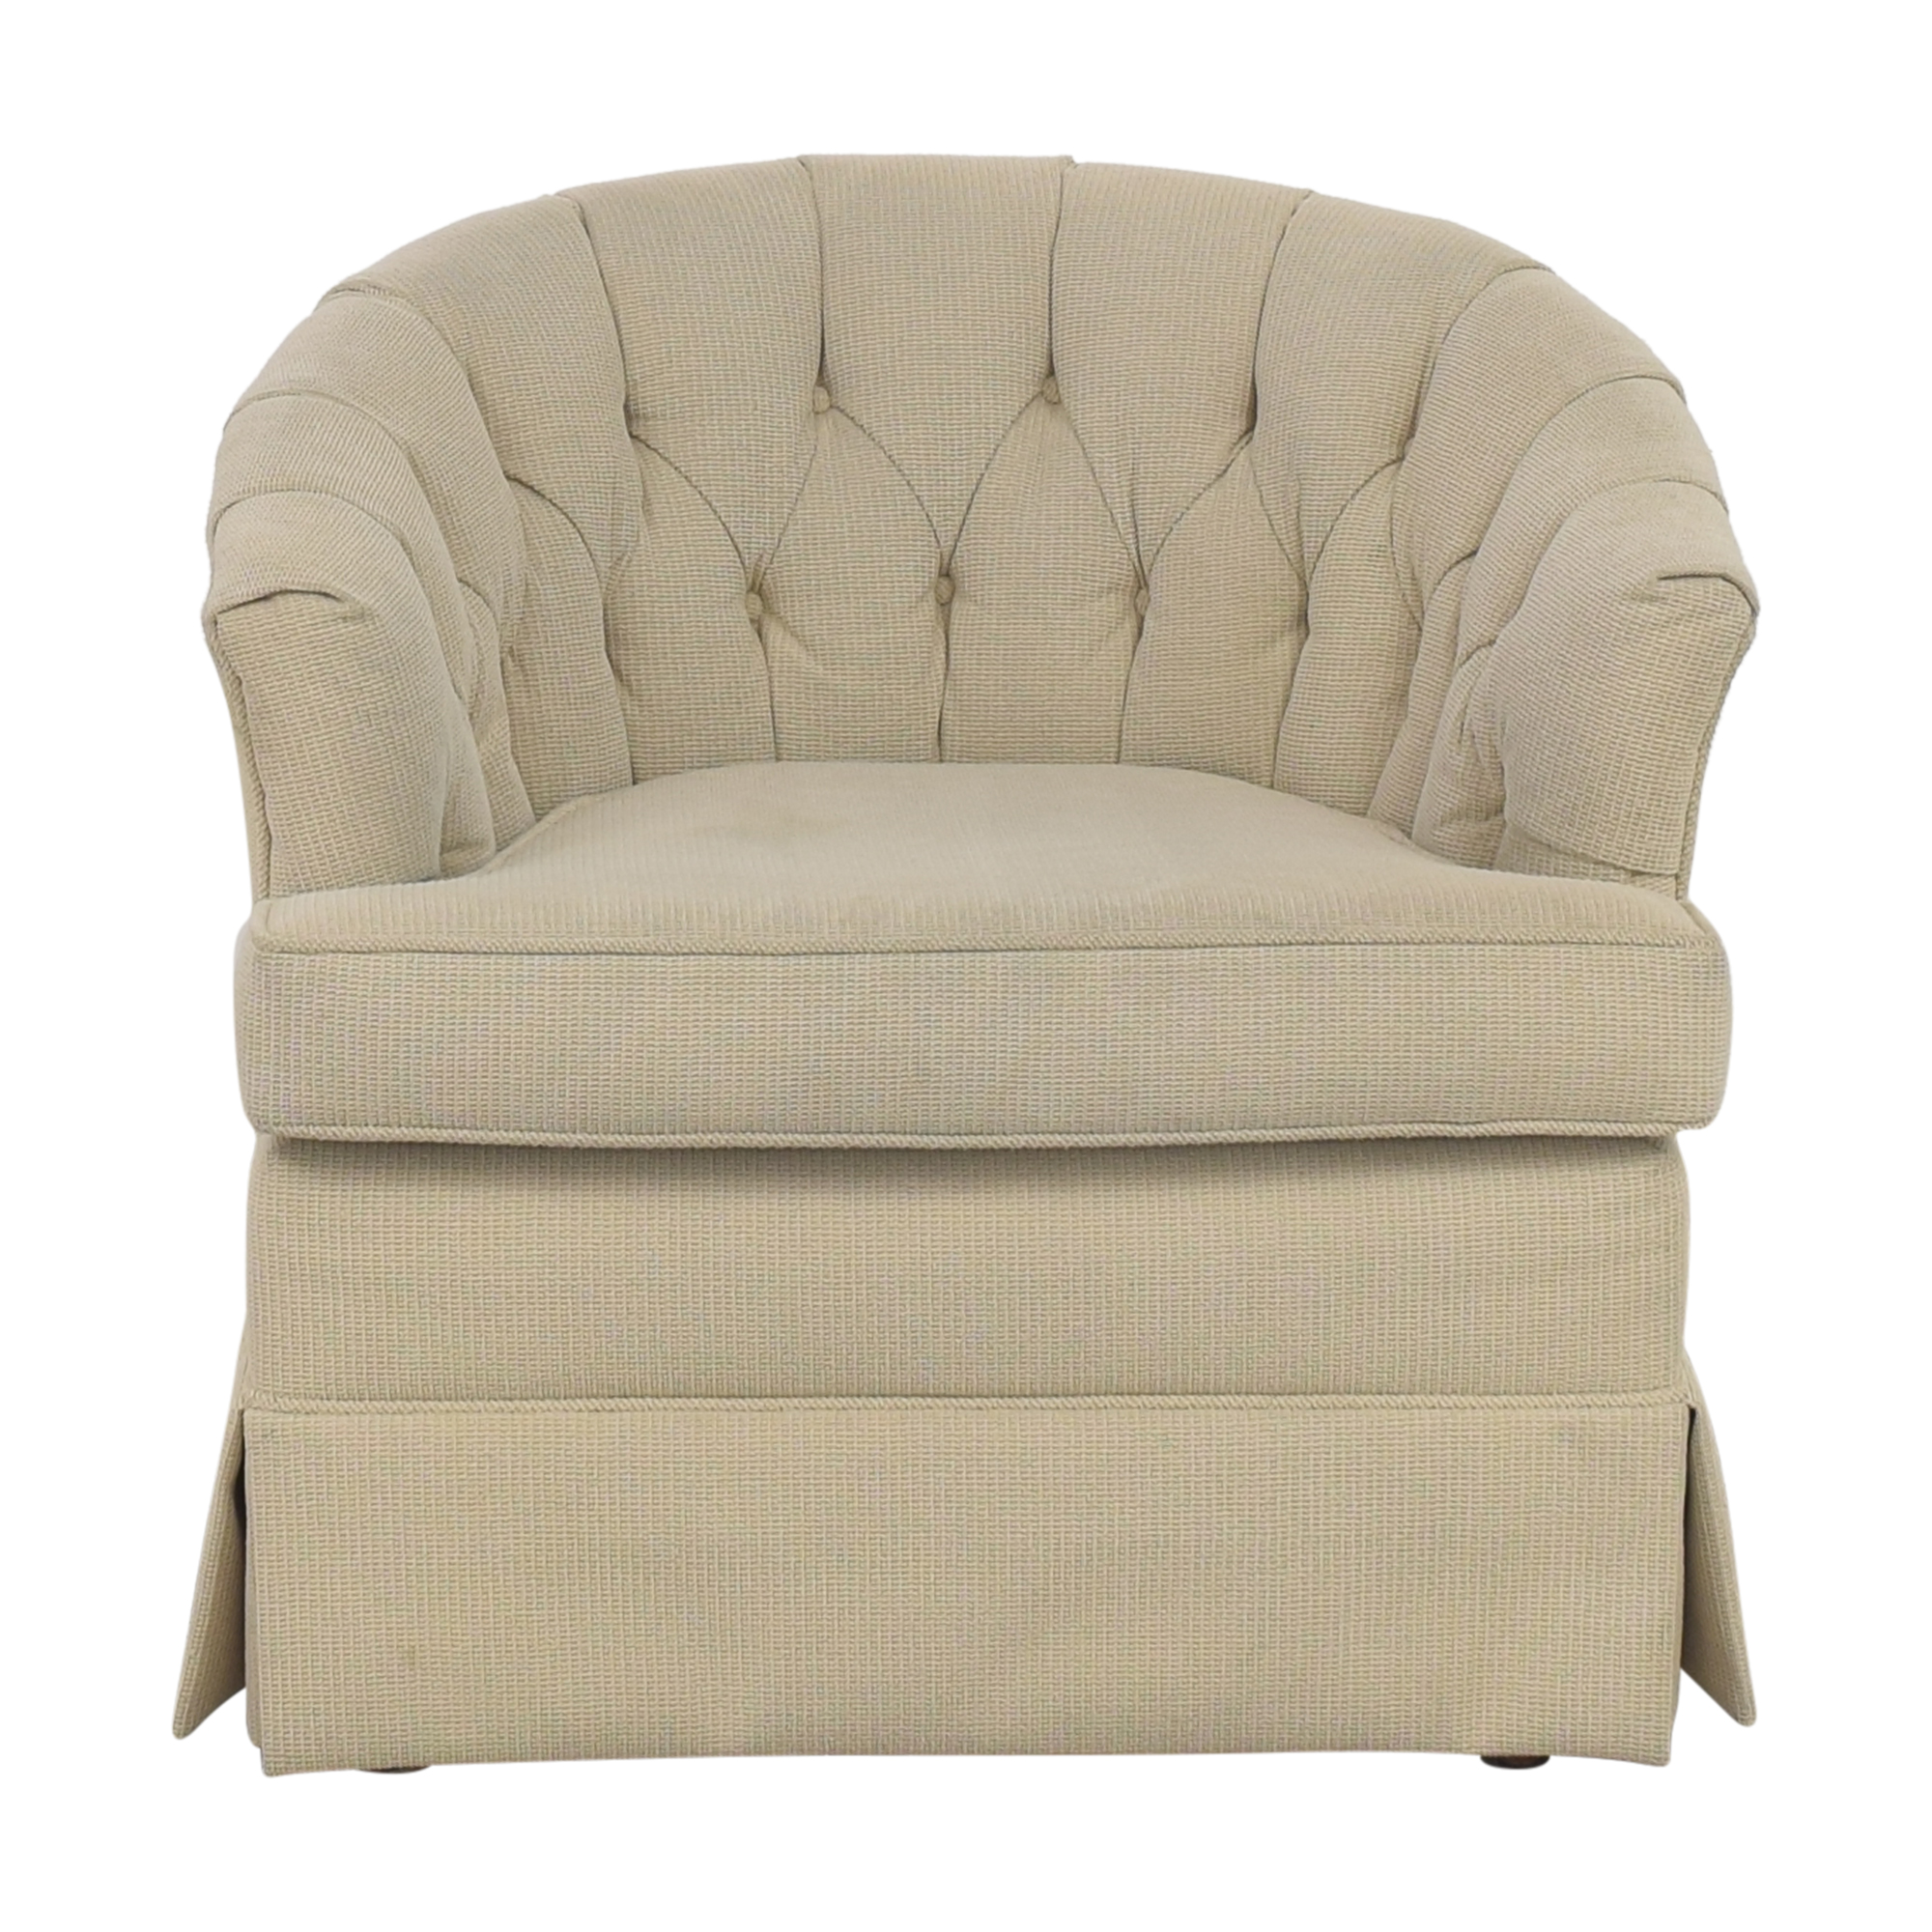 Flexsteel Flexsteel Tufted Barrel Chair nyc